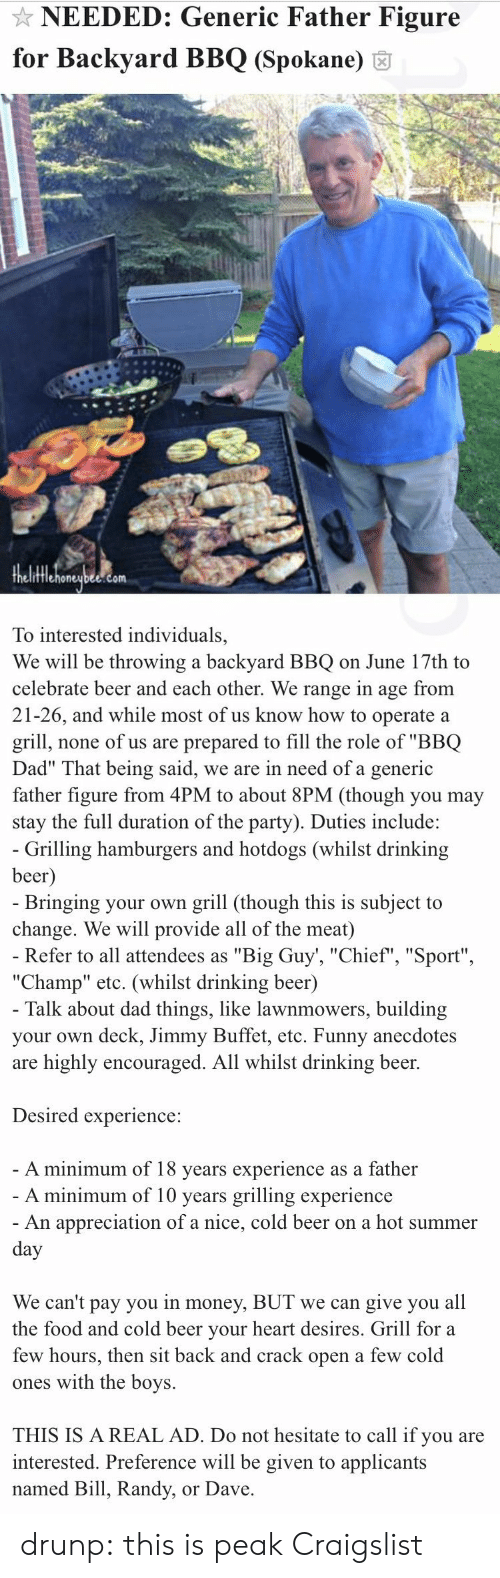 "drinking beer: NEEDED: Generic Father Figure  for Backyard BBQ (Spokane) 6  fflehoneubee.com  To interested individuals,  We will be throwing a backyard BBQ on June 17th to  celebrate beer and each other. We range in age from  21-26, and while most of us know how to operate a  grill, none of us are prepared to fill the role of ""BBQ  Dad"" That being said, we are in need of a generic  father figure from 4PM to about 8PM (though you may  stay the full duration of the party). Duties include:   Grilling hamburgers and hotdogs (whilst drinking  beer  Bringing your own grill (though this is subject to  change. We will provide all of the meat)  Refer to all attendees as ""Big Guy', ""Chief"", ""Sport""  ""Champ"" etc. (whilst drinking beer)  Talk about dad things, like lawnmowers, building  your own deck, Jimmy Buffet, etc. Funny anecdotes  are highly encouraged. All whilst drinking beer.  Desired experience:  A minimum of 18 vears experience as a father  A minimum of 10 years grilling experience  An appreciation of a nice, cold beer on a hot summer  We can't pay you in money, BUT we can give you all  the food and cold beer vour heart desires. Grill for a  few hours, then sit back and crack open a few cold  ones with the boys.  THIS IS A REAL AD. Do not hesitate to call if you are  interested. Preference will be given to applicants  named Bill, Randy, or Dave drunp: this is peak Craigslist"